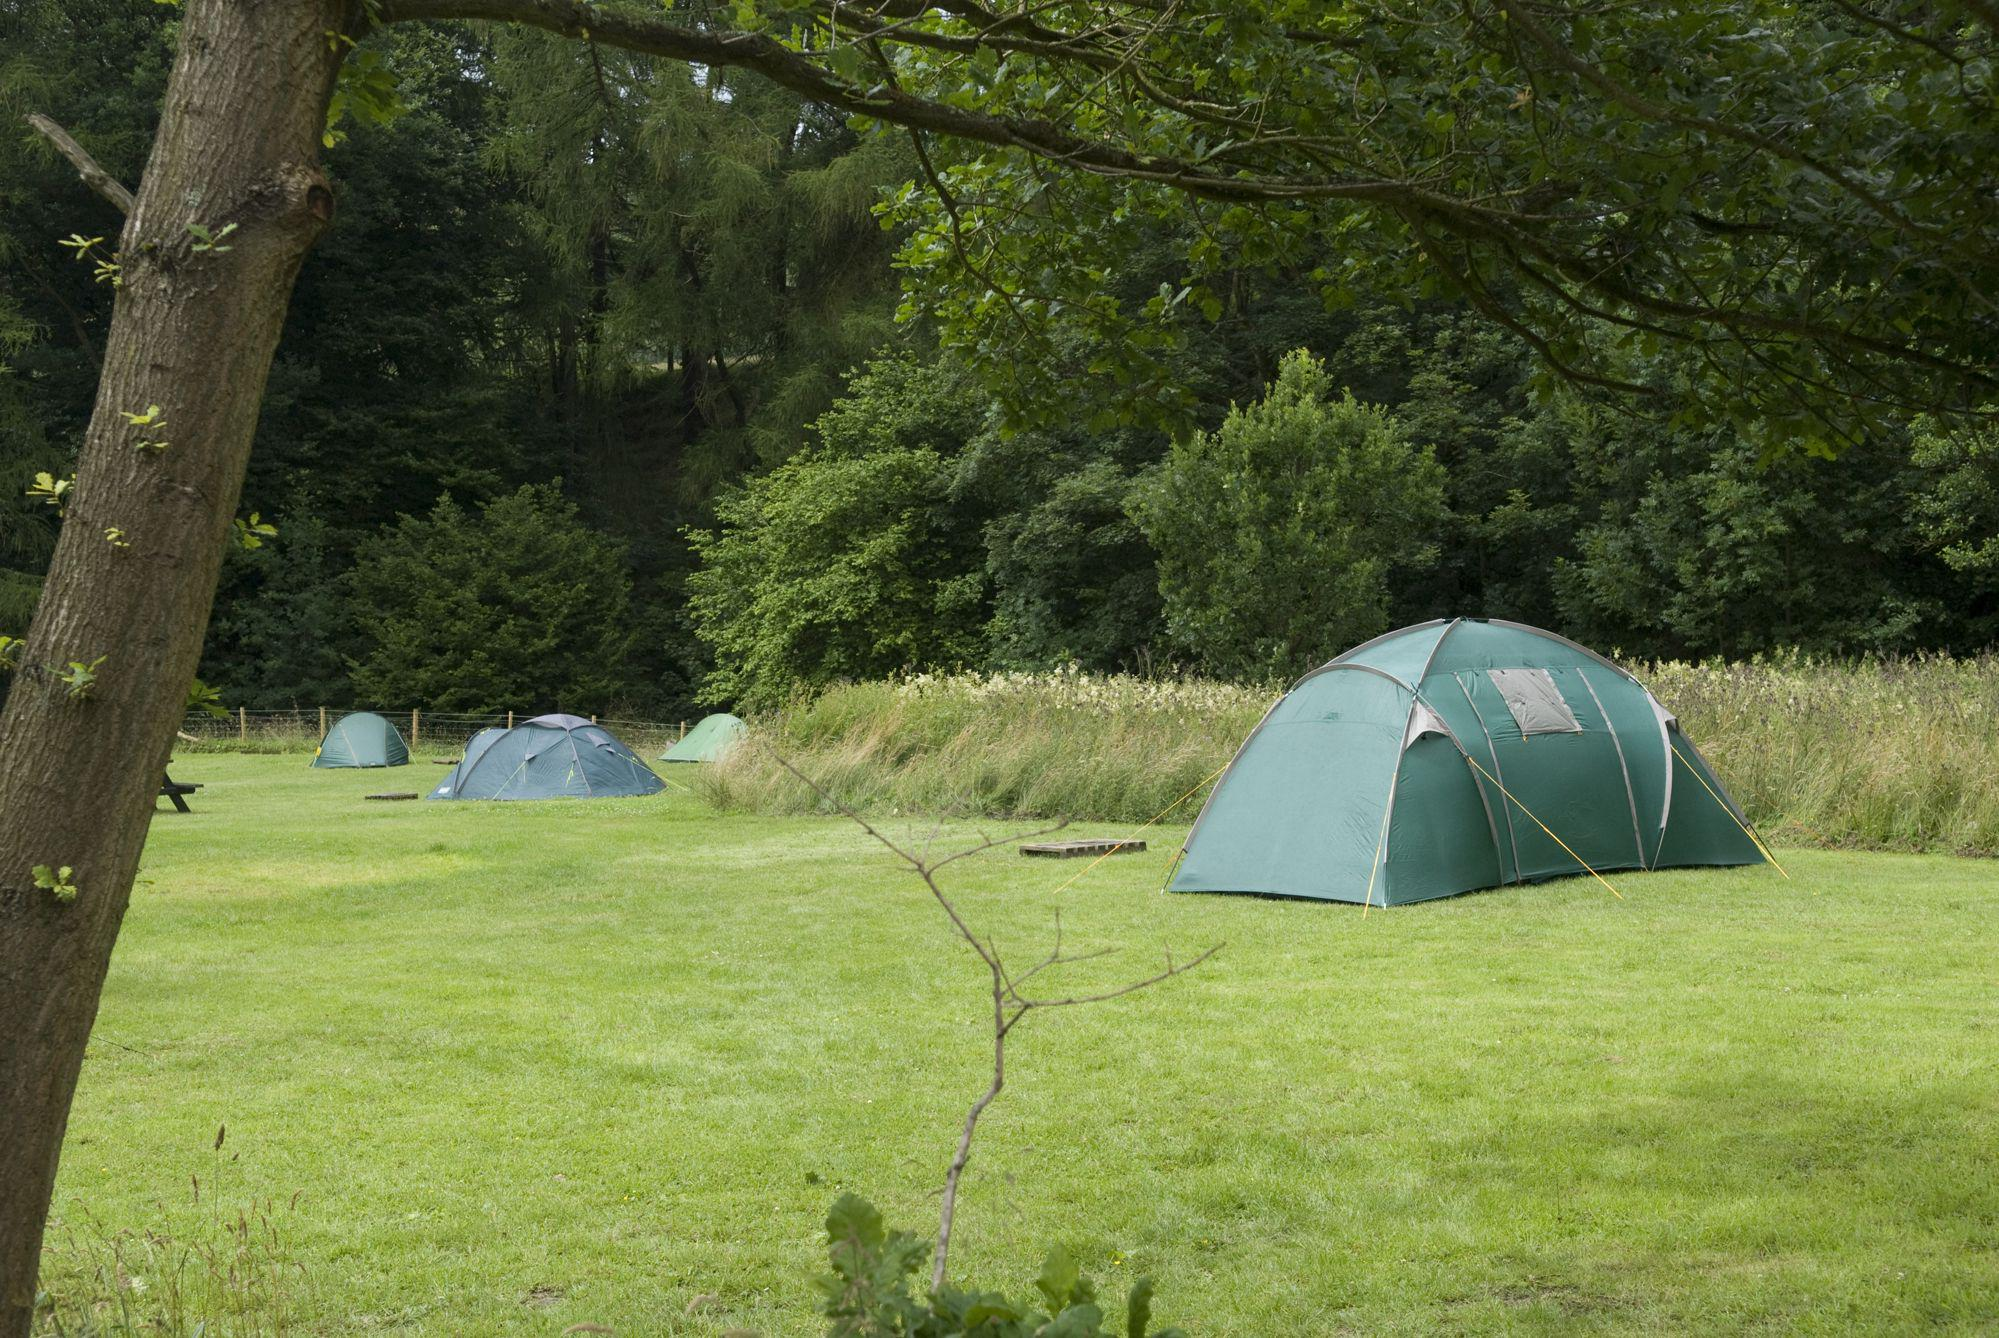 Hope Camping | Best campsites in Hope, Derbyshire